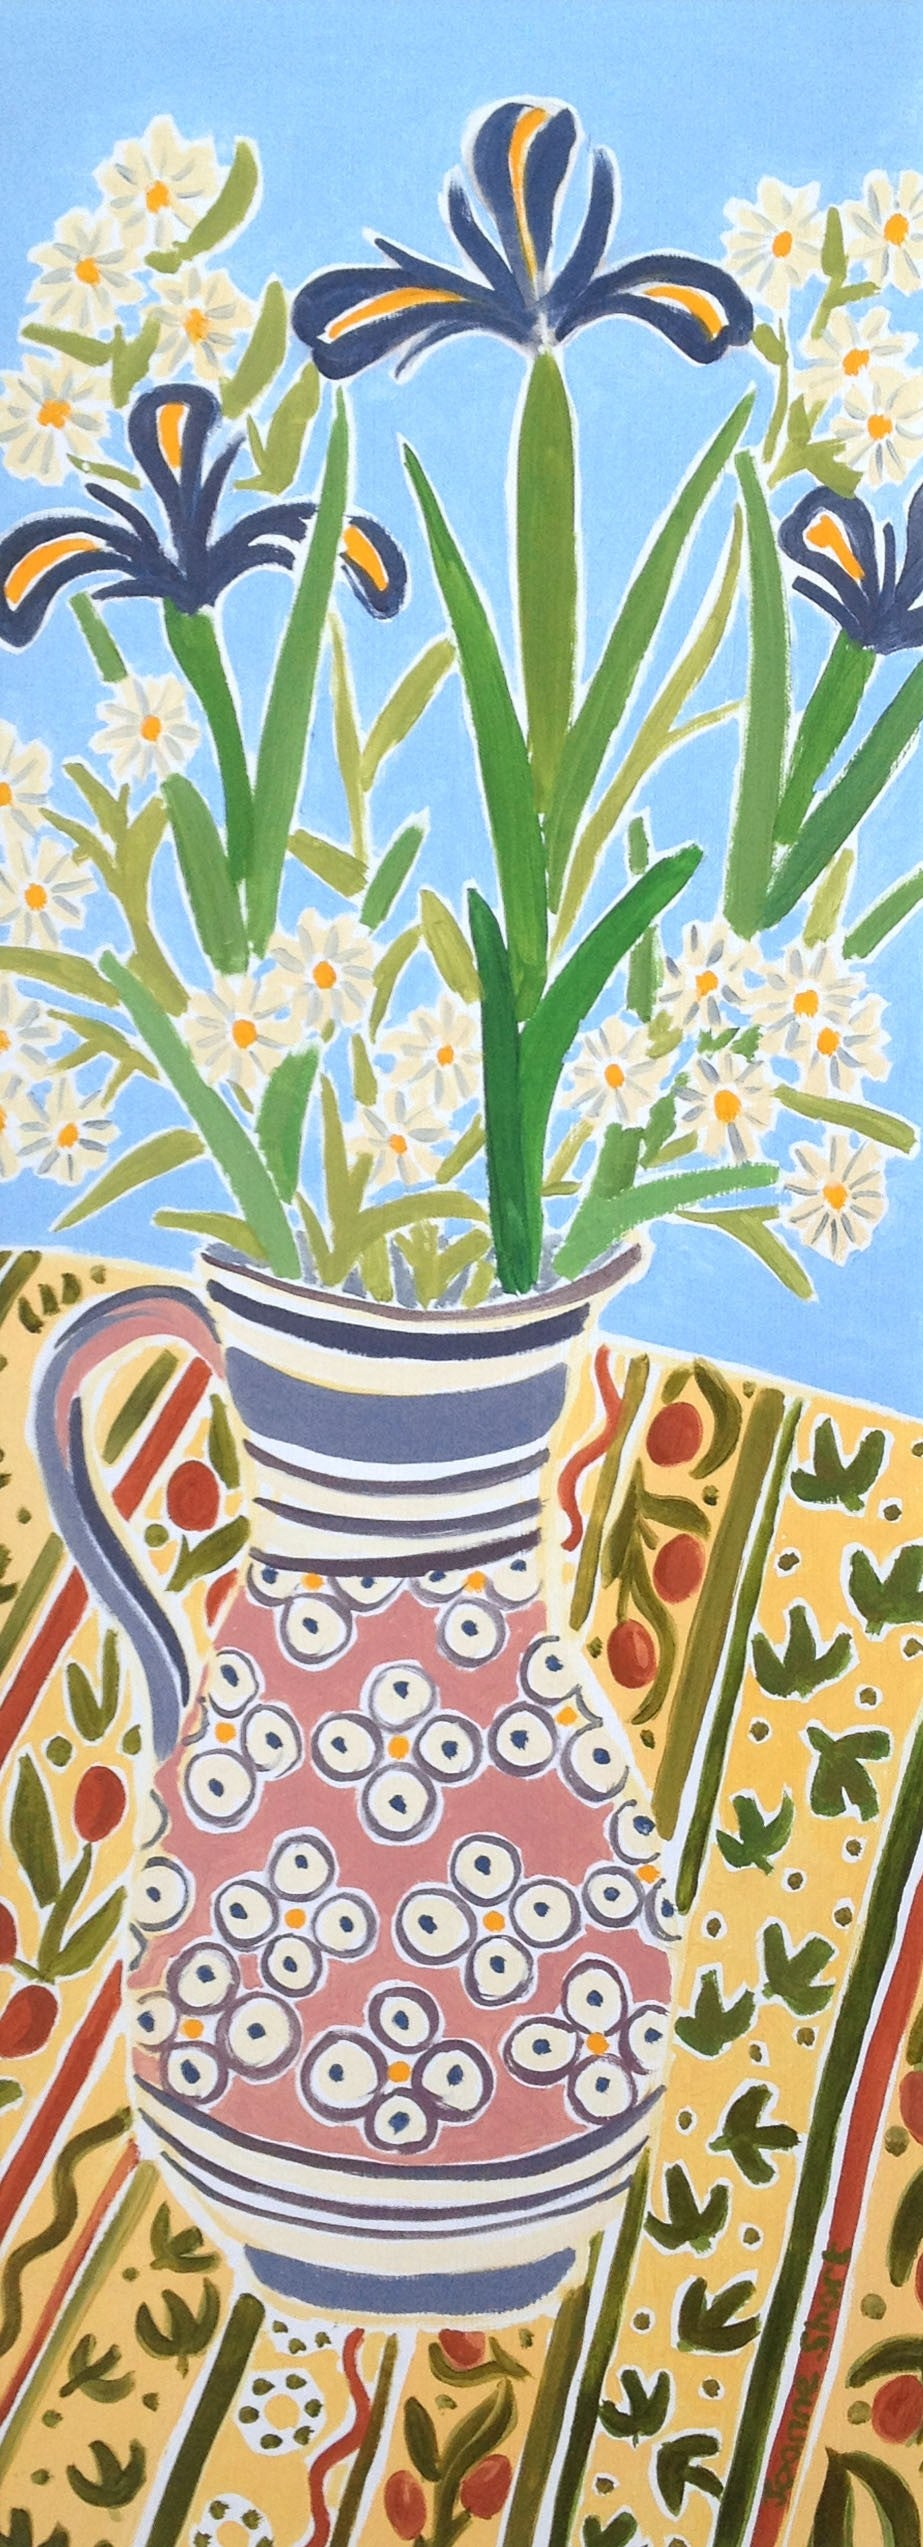 Original Still Life Painting by Joanne Short. Blue Iris in a Pink Jug. Provence, France.